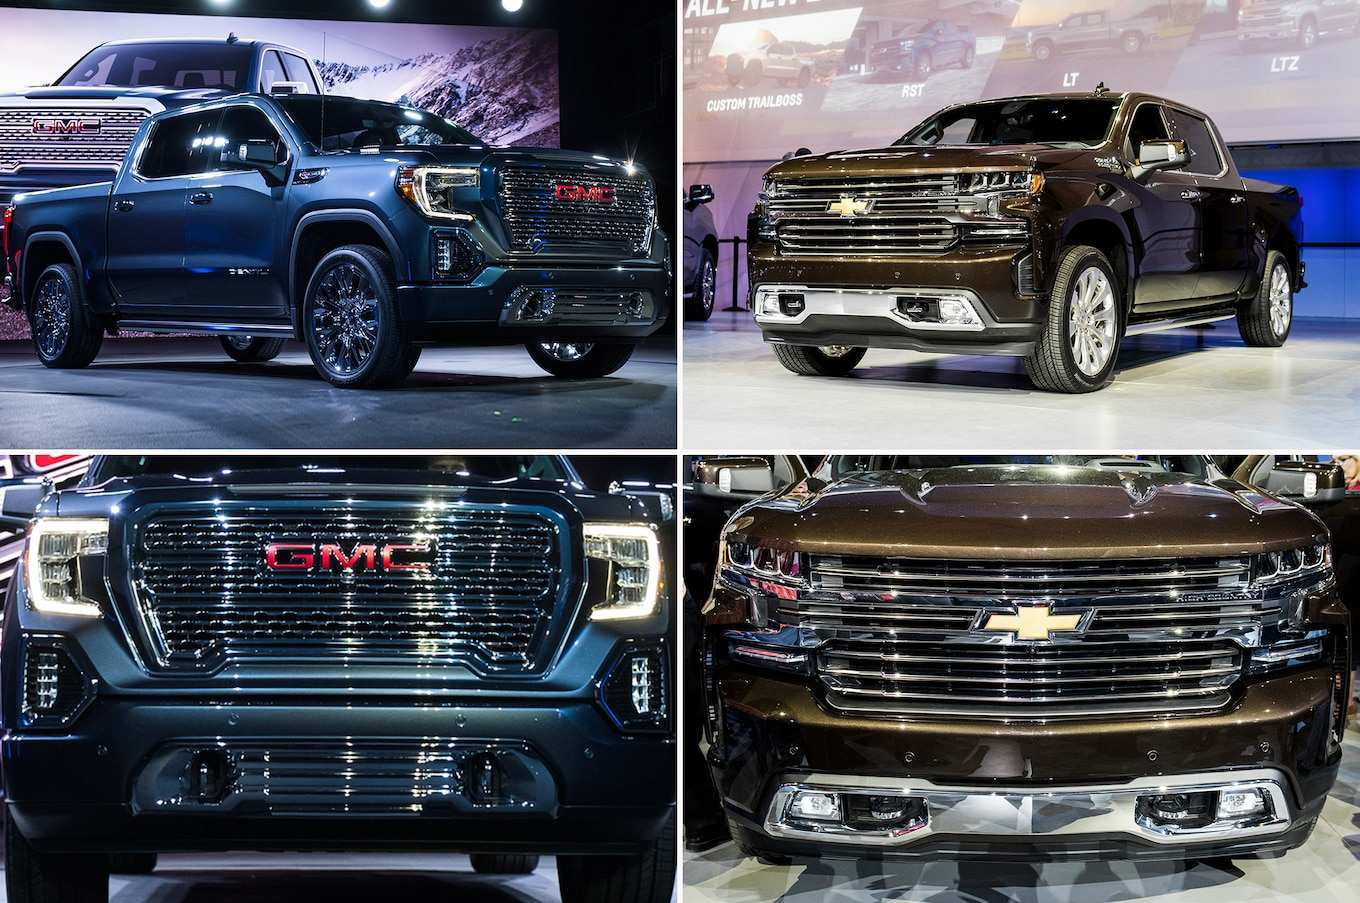 27 All New 2019 Gmc Vs Silverado Specs for 2019 Gmc Vs Silverado